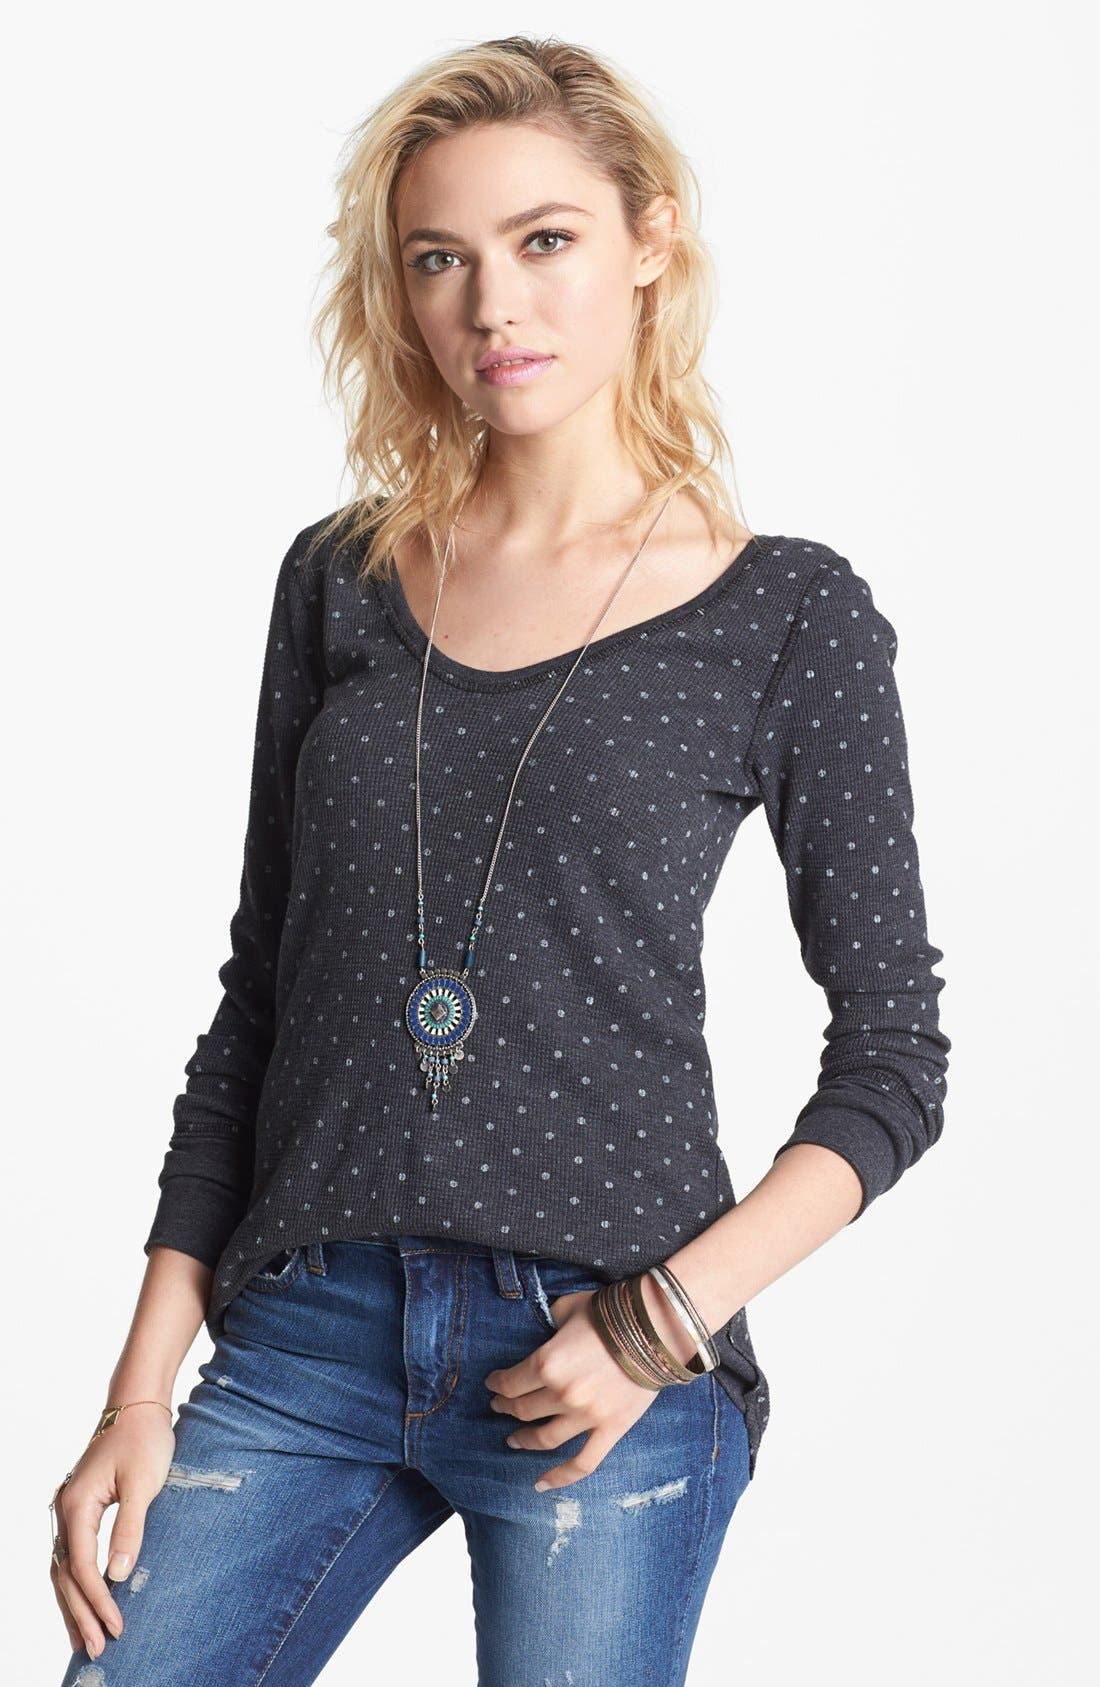 Alternate Image 1 Selected - Free People Polka Dot Thermal Tee